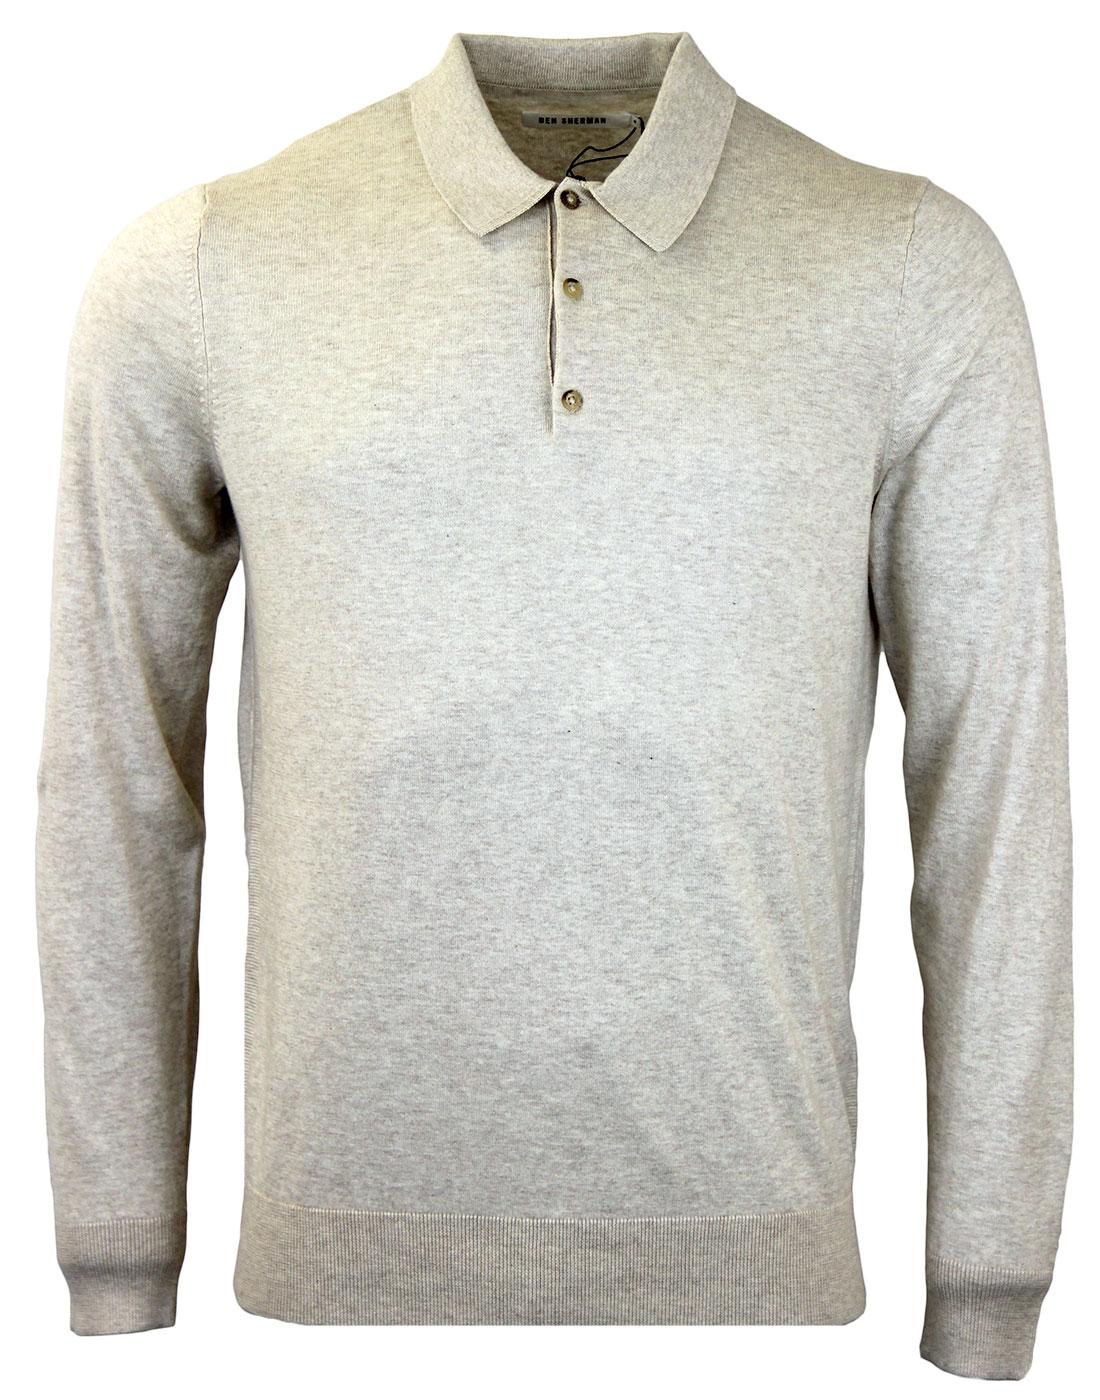 BEN SHERMAN Retro Mod Long Sleeve Knitted Polo SM